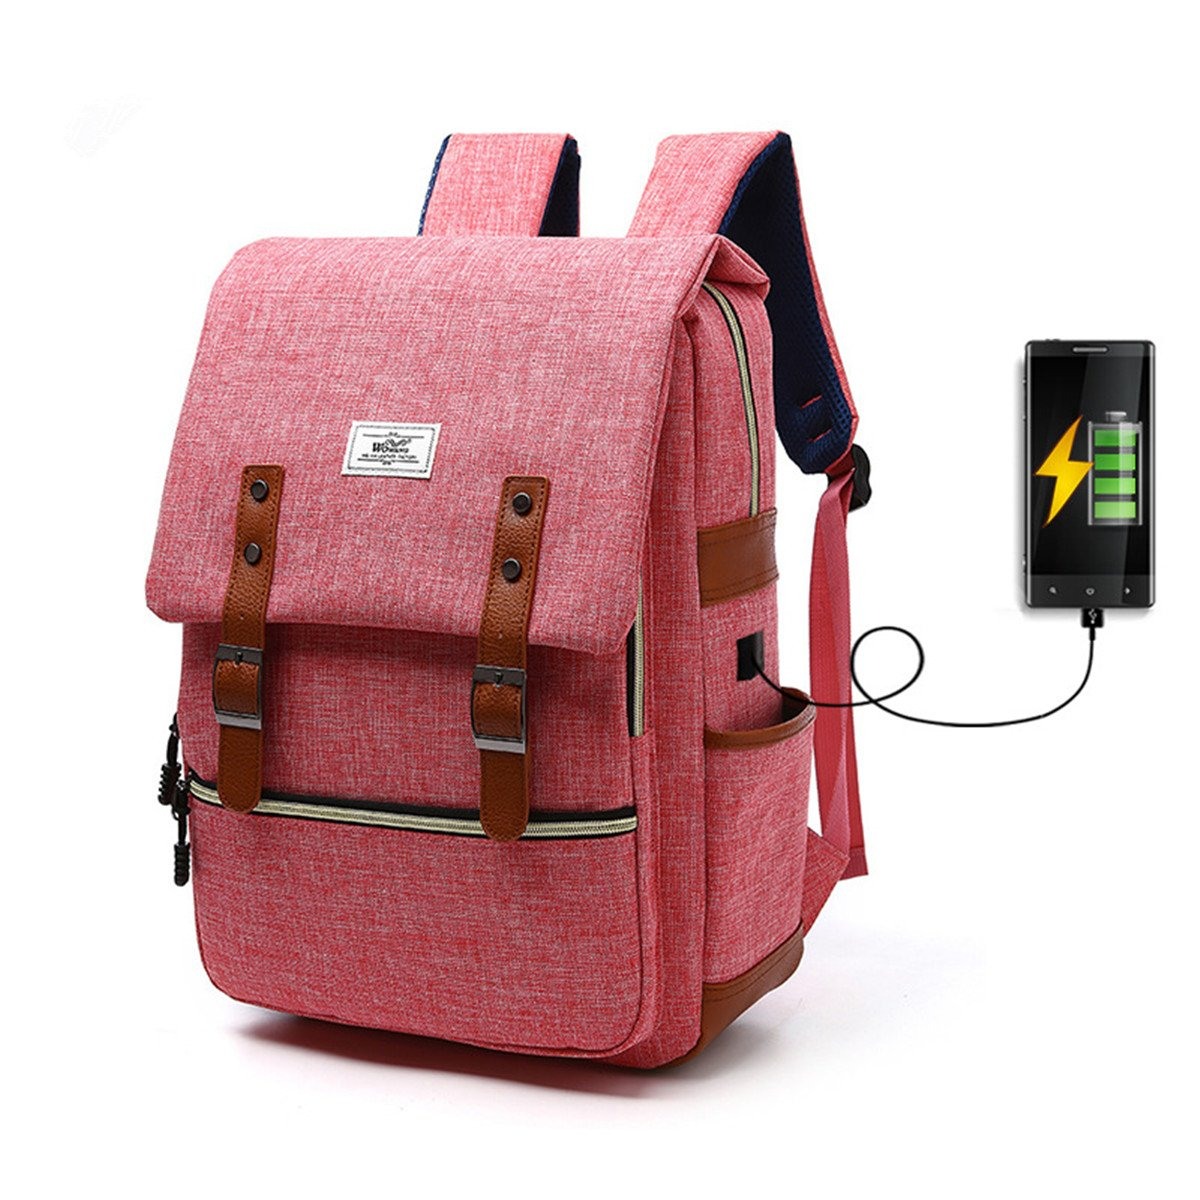 17326687c0ab Cheap Bookbags College, find Bookbags College deals on line at ...